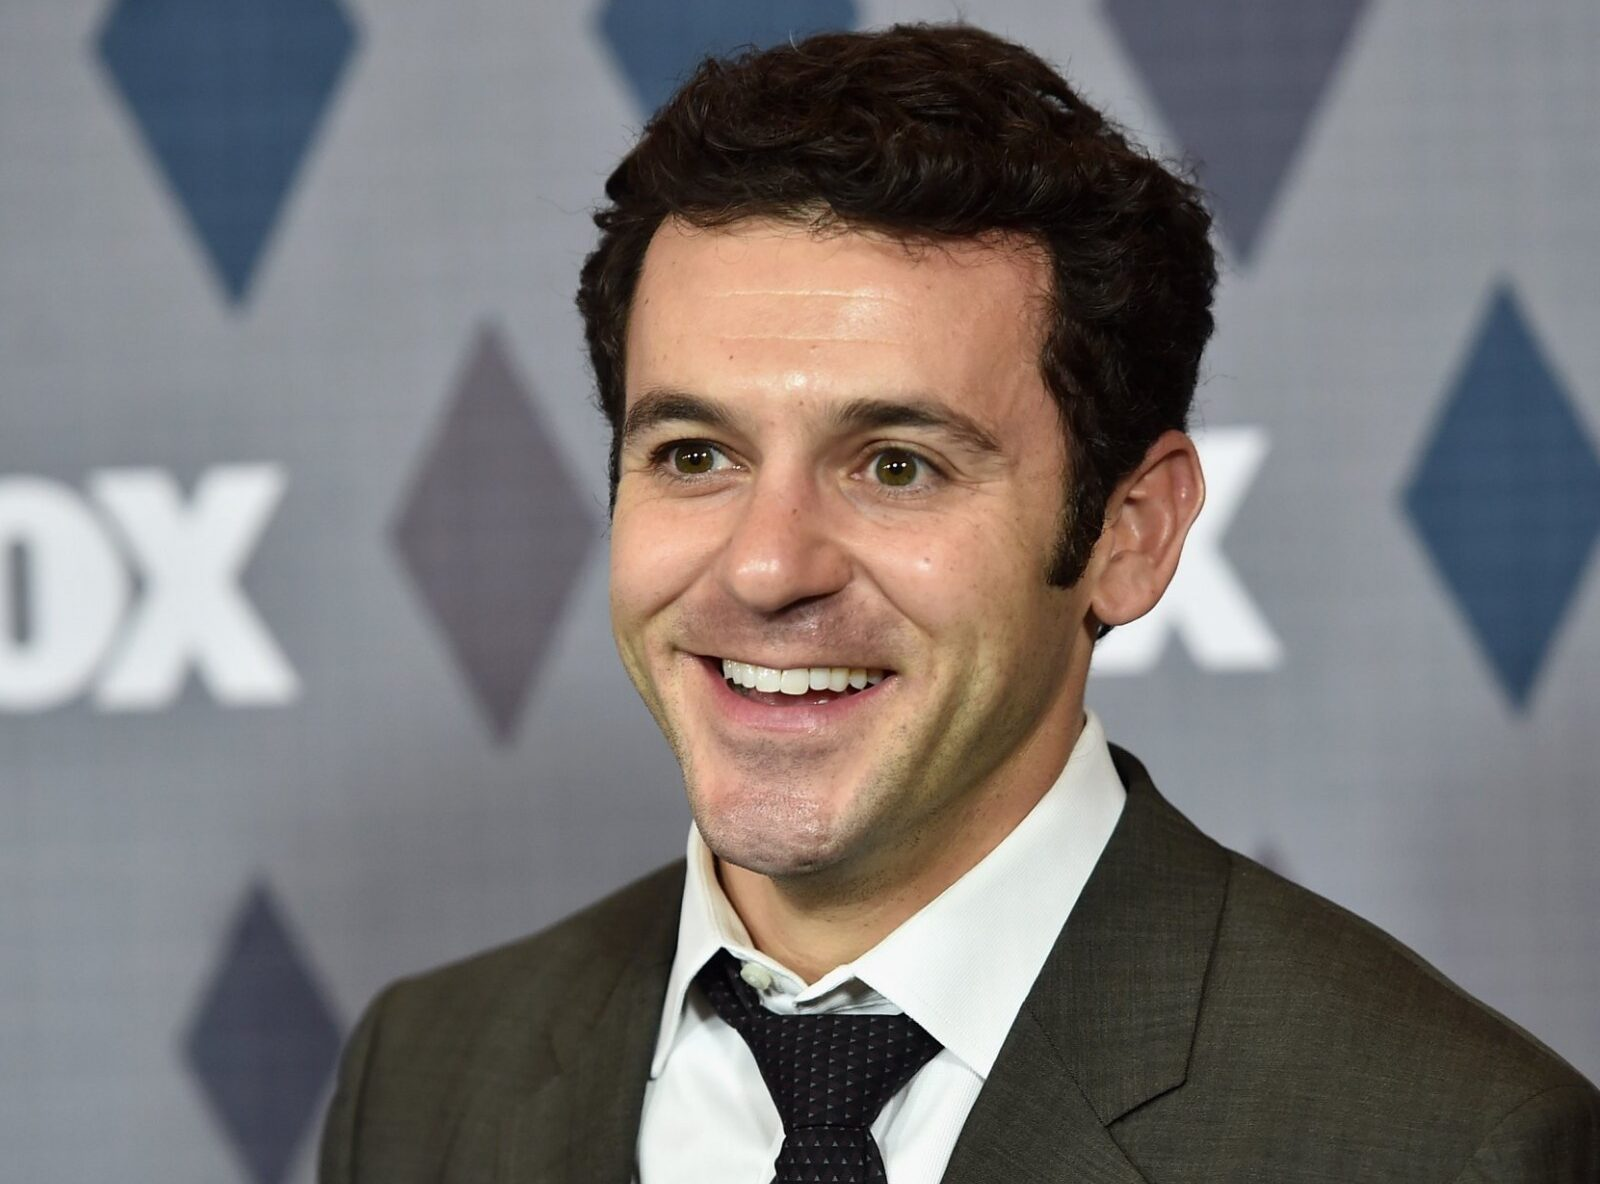 Fred Savages Reminisces About Landing His 'Wonder Years' Role